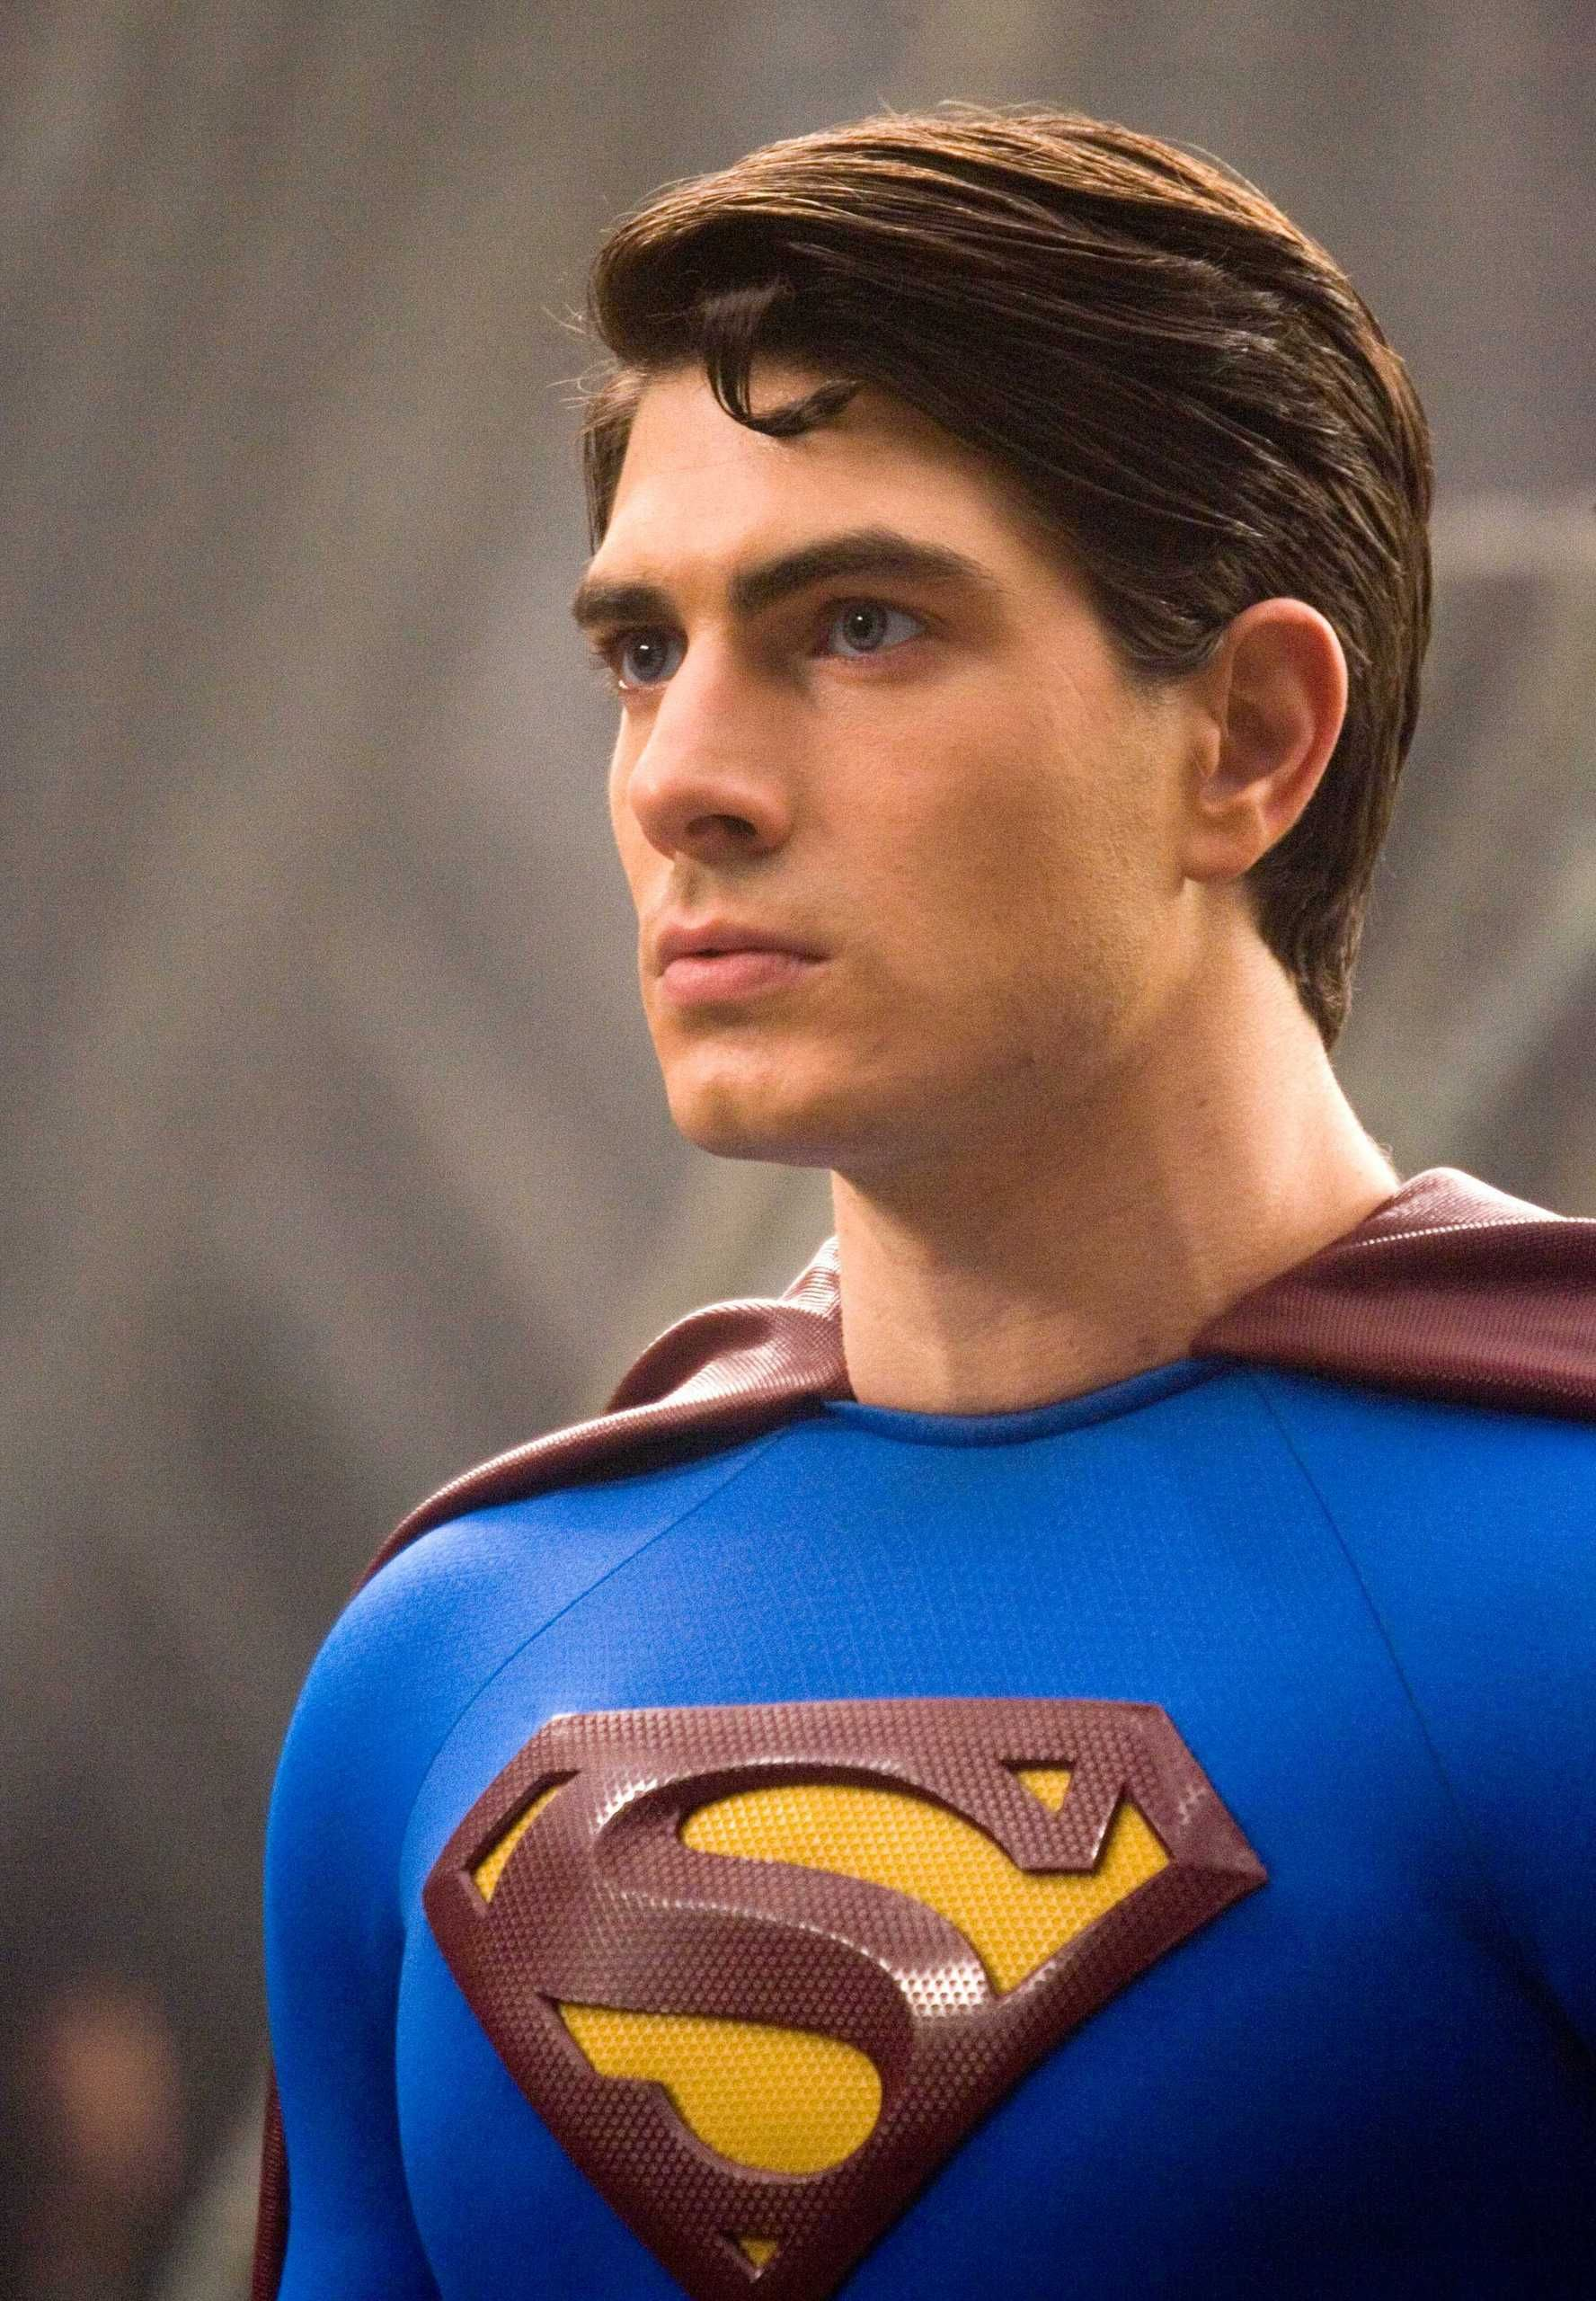 who has been you guys favorite superman from anytime?,mine is Brandon routh 2006 superman returns